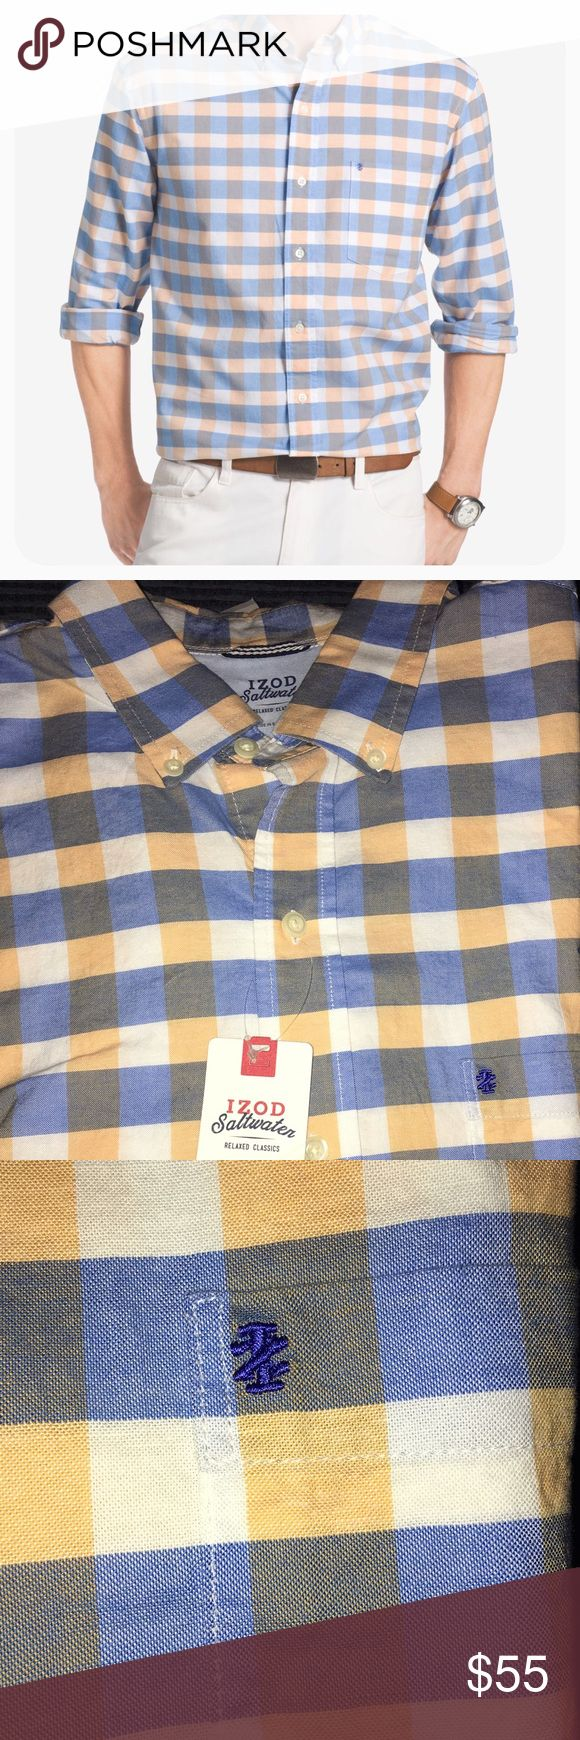 IZOD Saltwater Men's Plaid Shirt IZOD Saltwater Newport Oxford Button Down Shirt.Logo at left chest, Cotton fabric,All over plaid button closure IZOD Shirts Tees - Long Sleeve